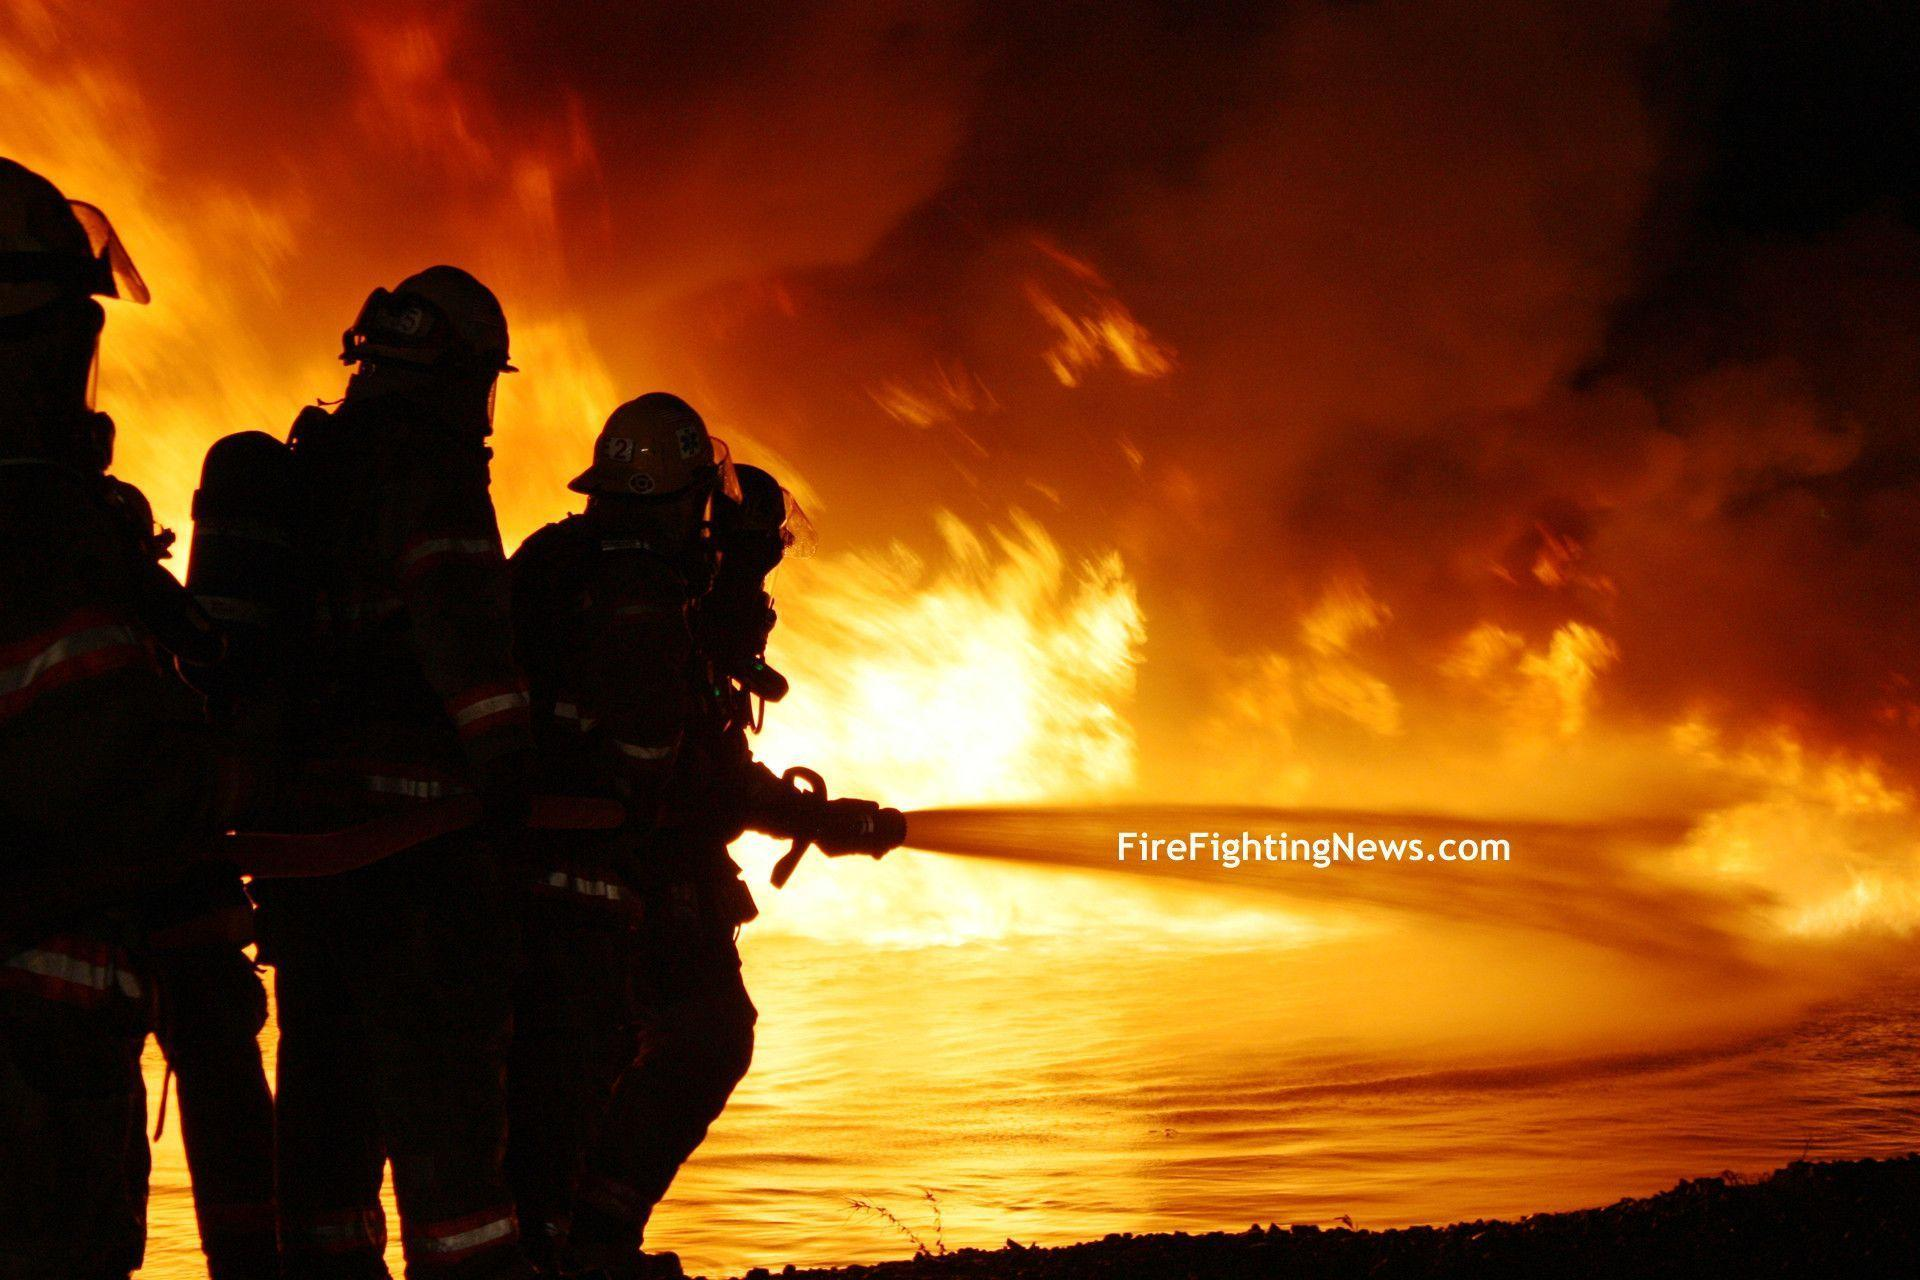 firefighter wallpapers for computer wallpaper cave